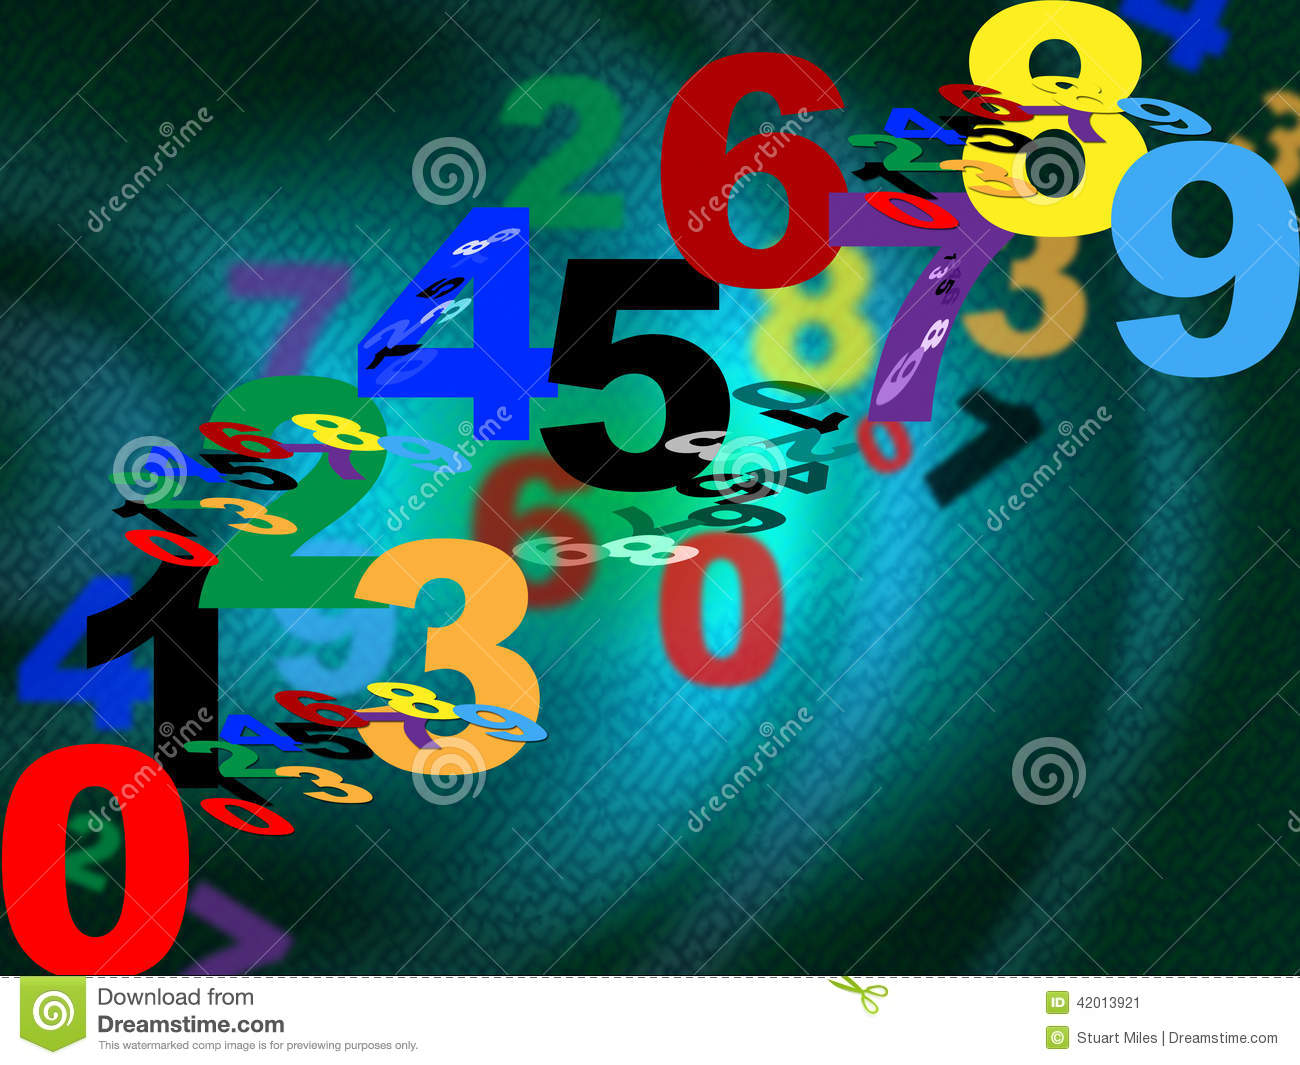 ... Counting maths means background design and numbers stock